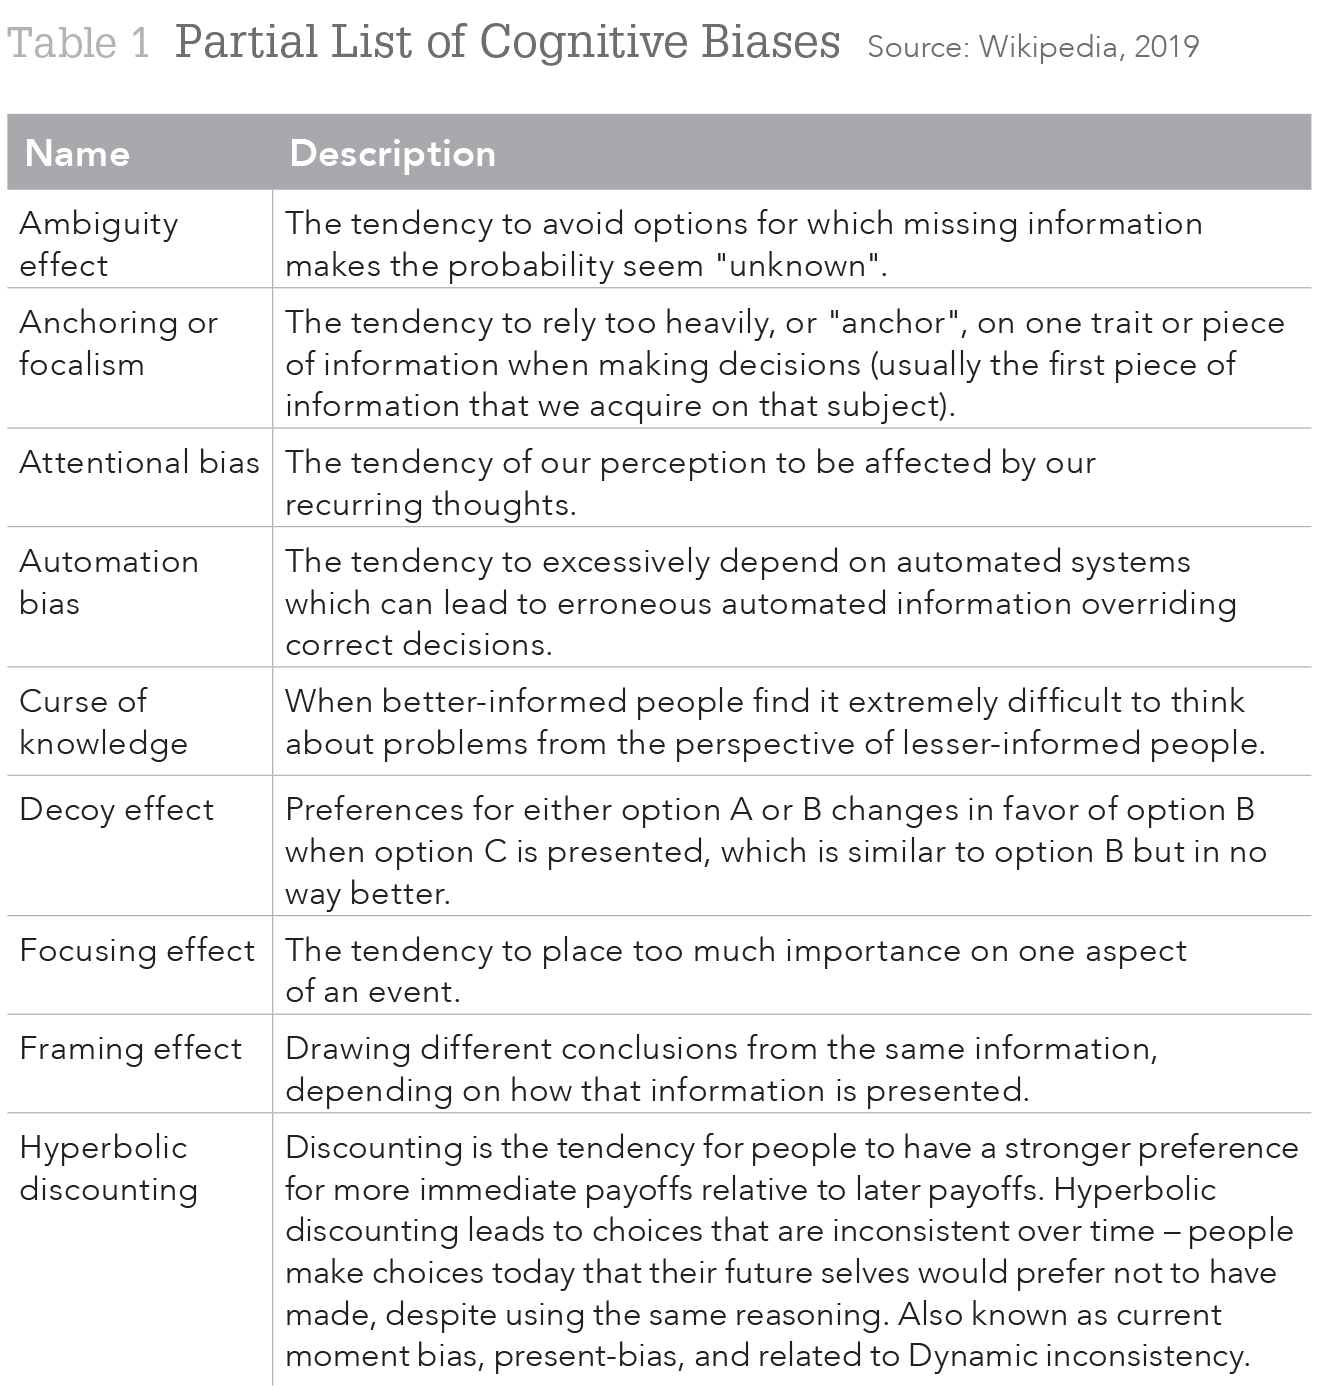 Table 1 Partial List of Cognitive Biases Source: Wikipedia, 2019